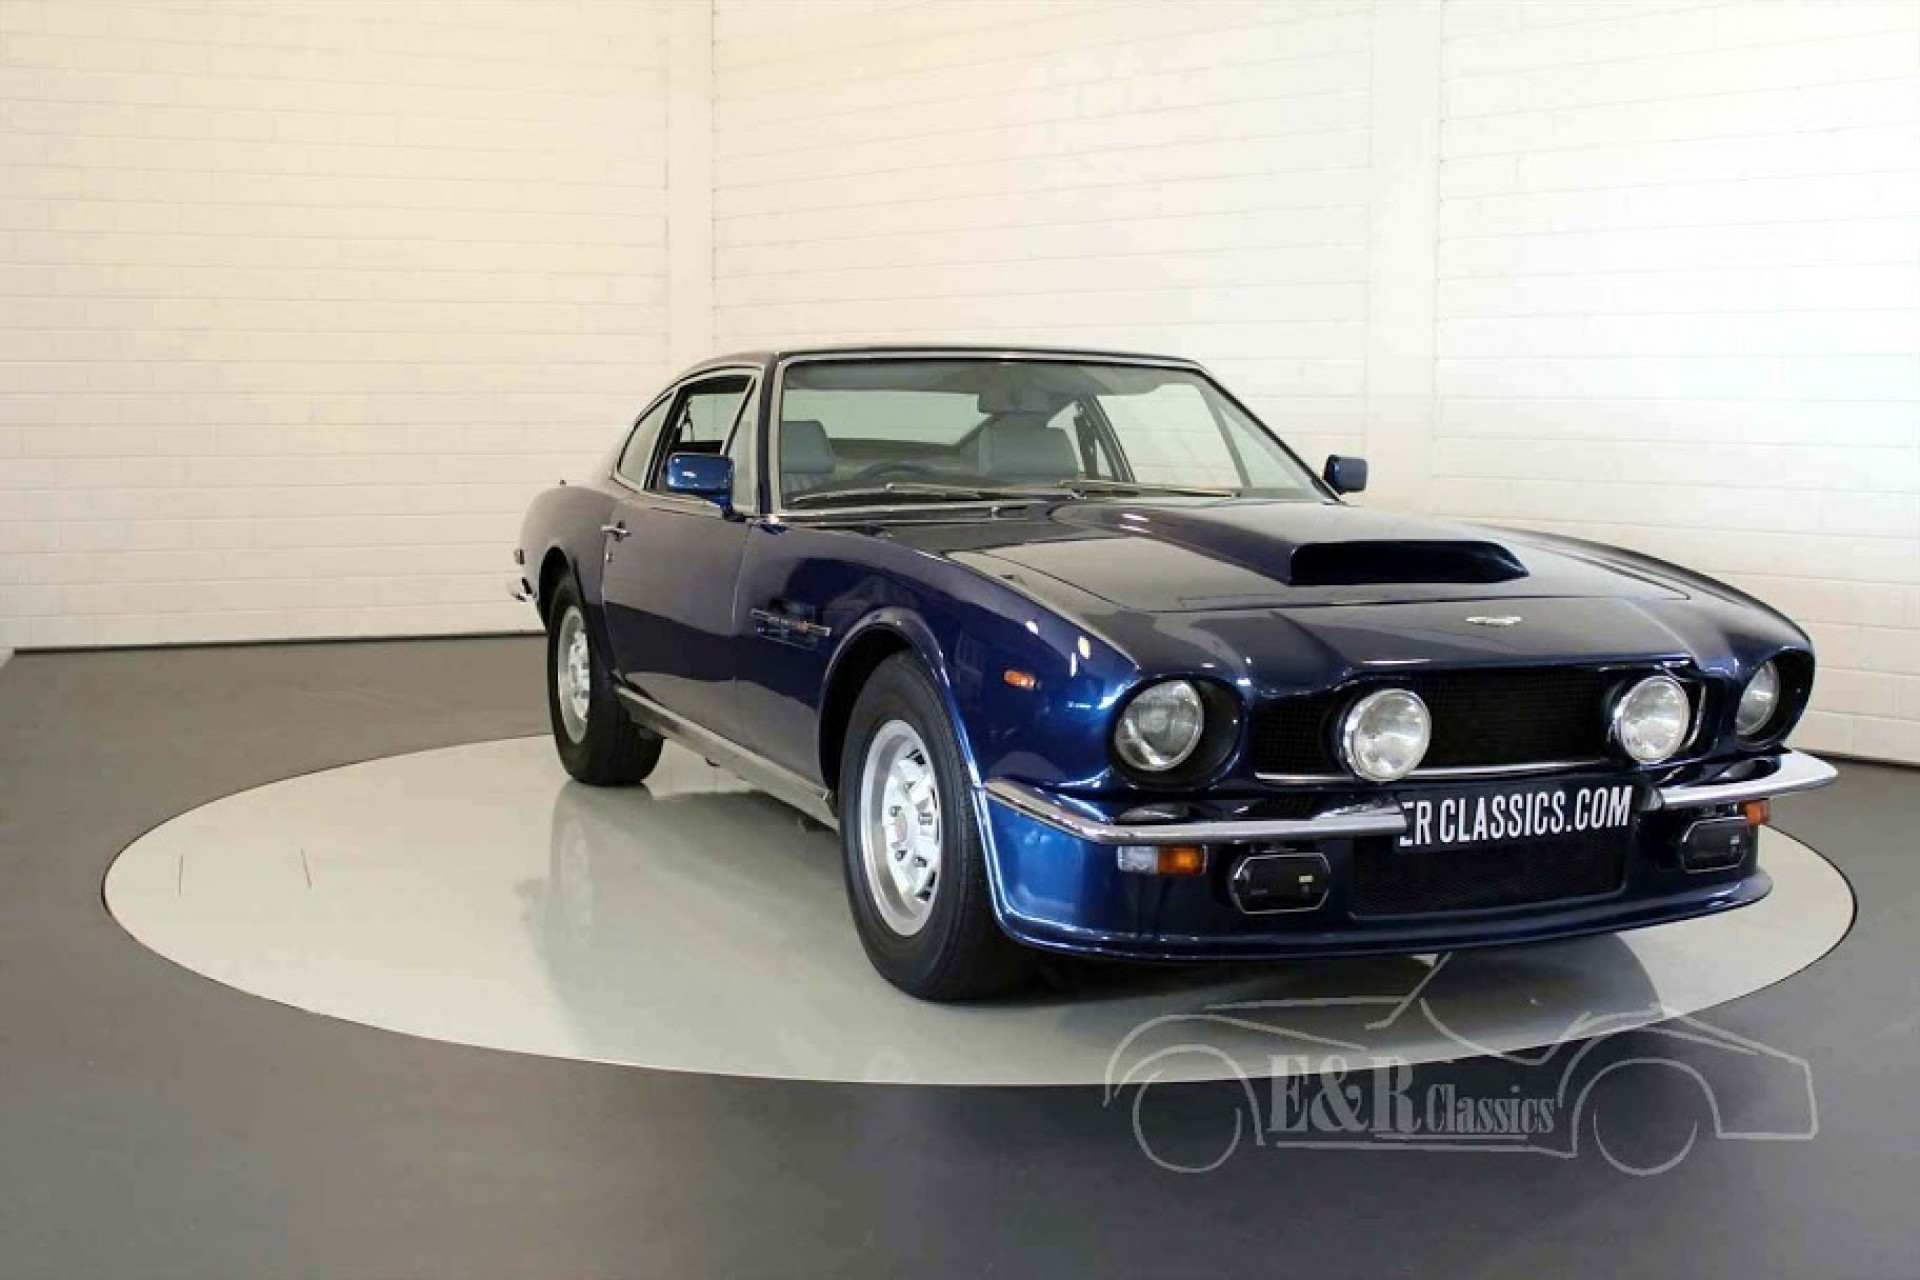 Route 31 Auto Sales >> Aston Martin Classic Cars | Aston Martin oldtimers for ...